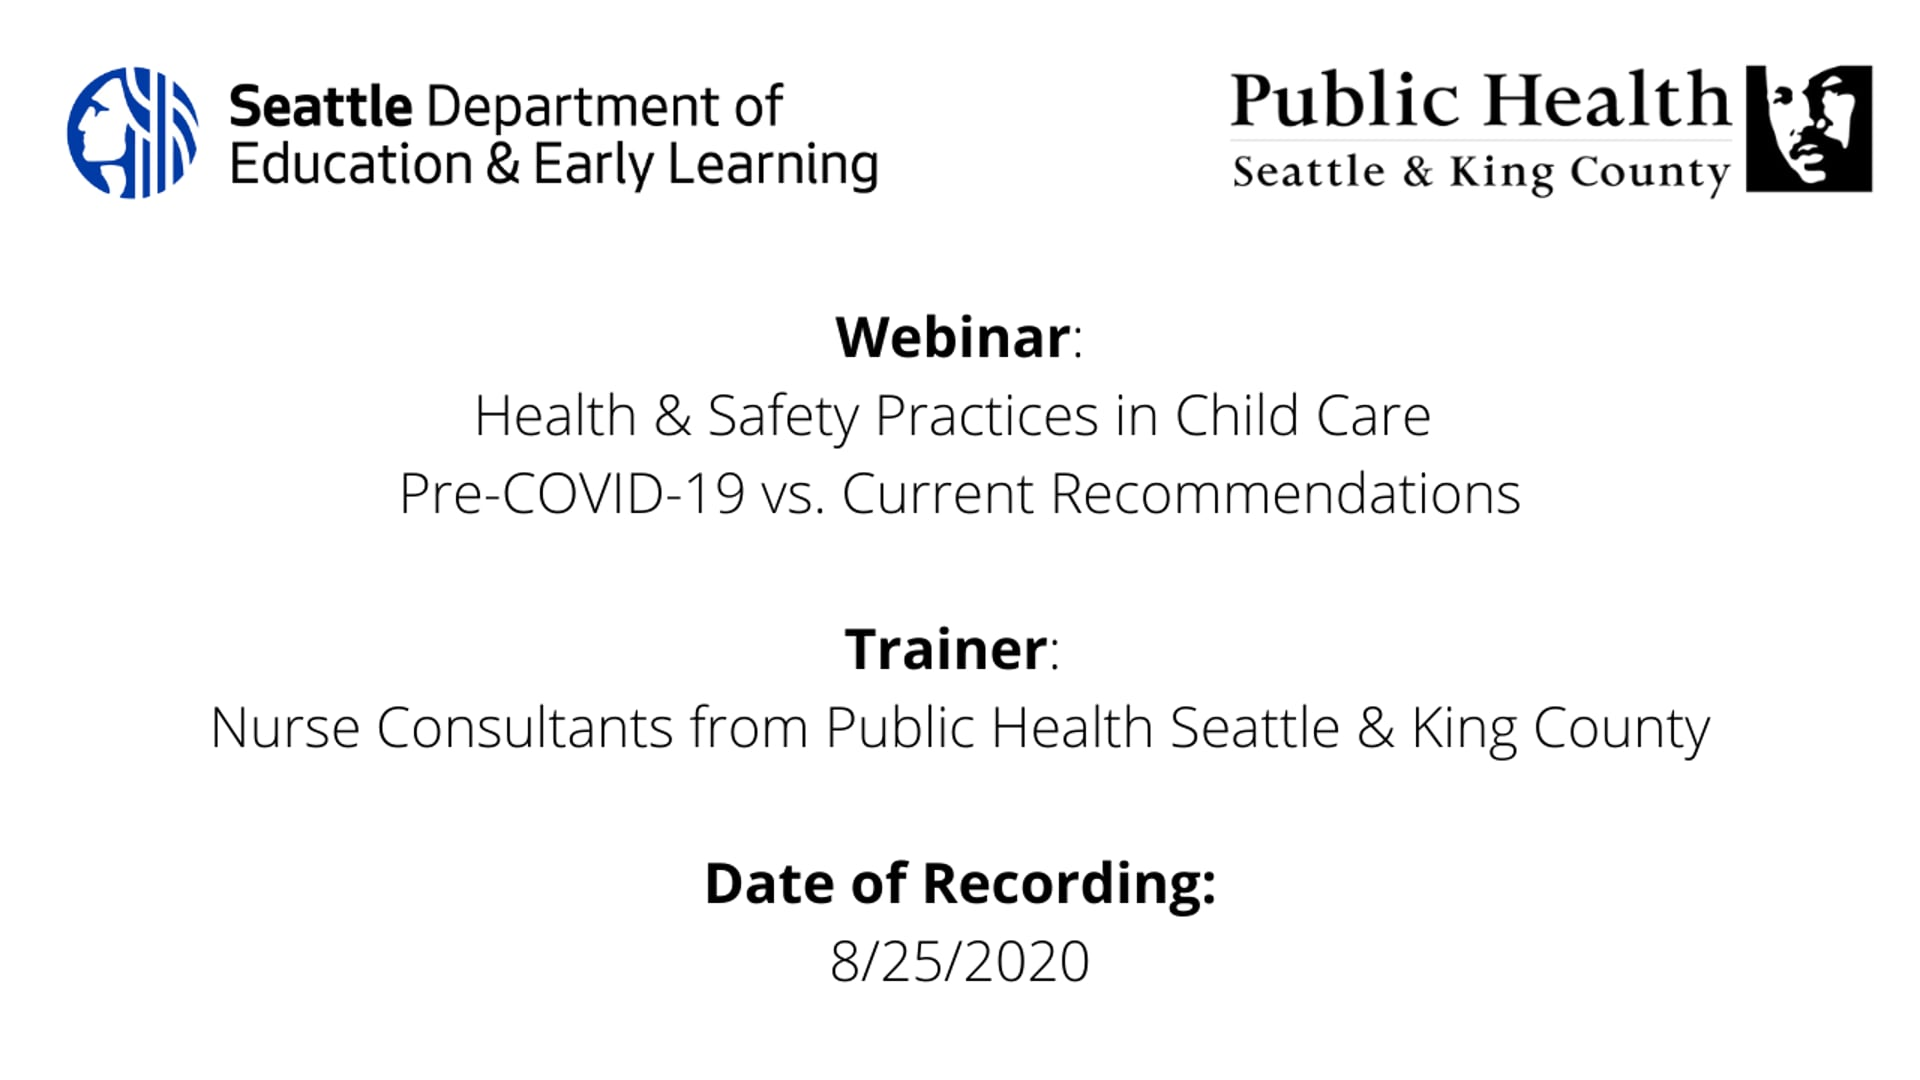 Health & Safety Practices in Child Care Pre-COVID-19 vs. Current Recommendations